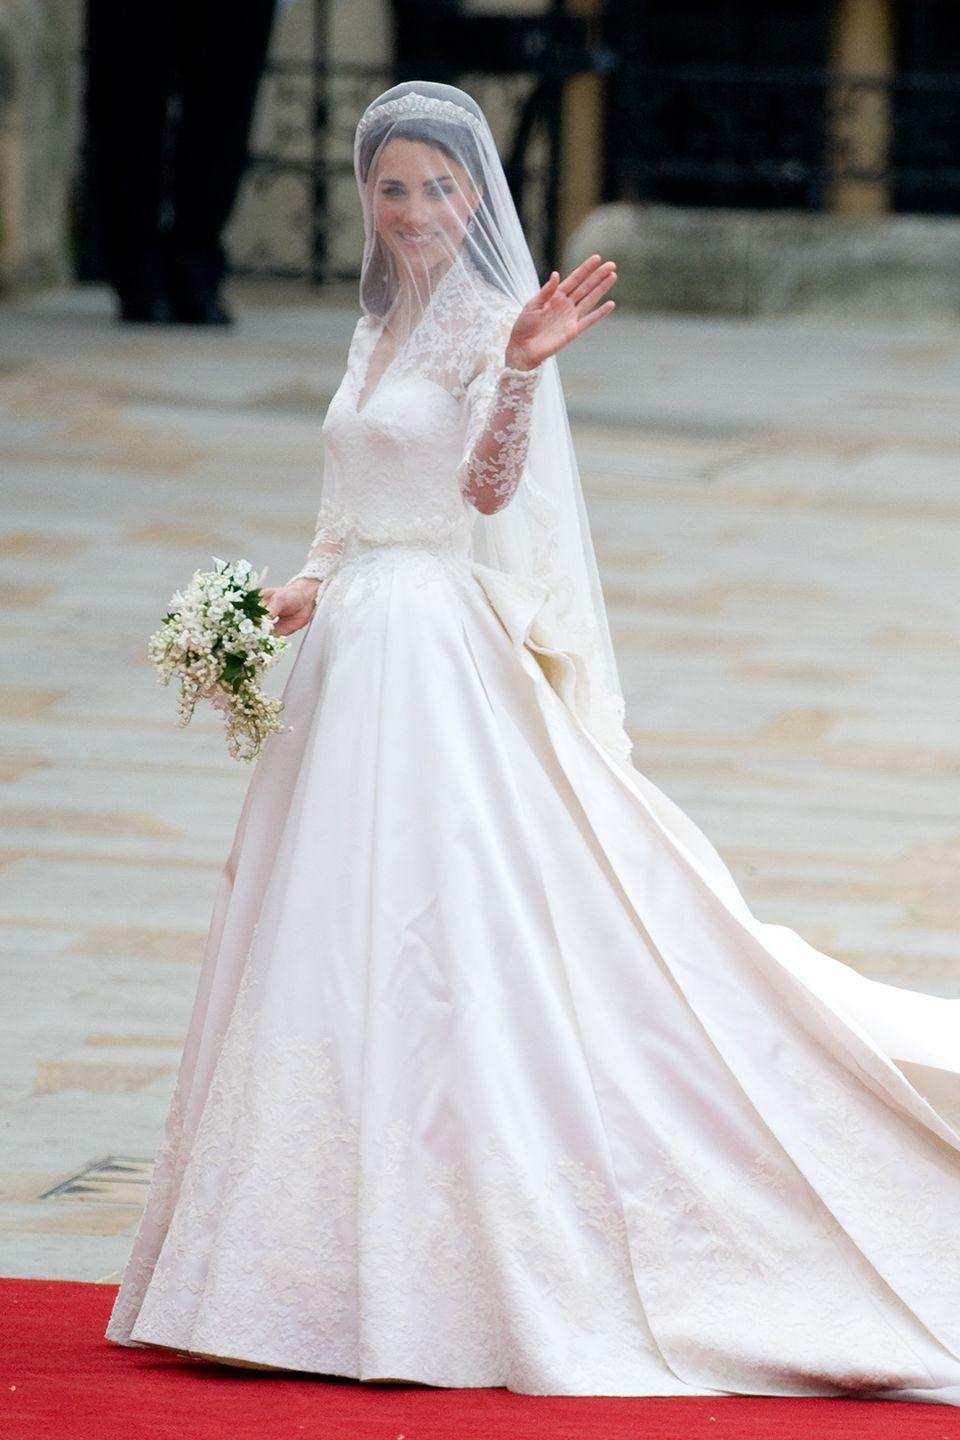 <p>Practically the whole world was watching when the Duchess of Cambridge arrived at Westminster Abbey to wed Prince William. Designed by Sarah Burton for Alexander McQueen, the dress sparked a million copycats — and a celebration of lace sleeves.</p>